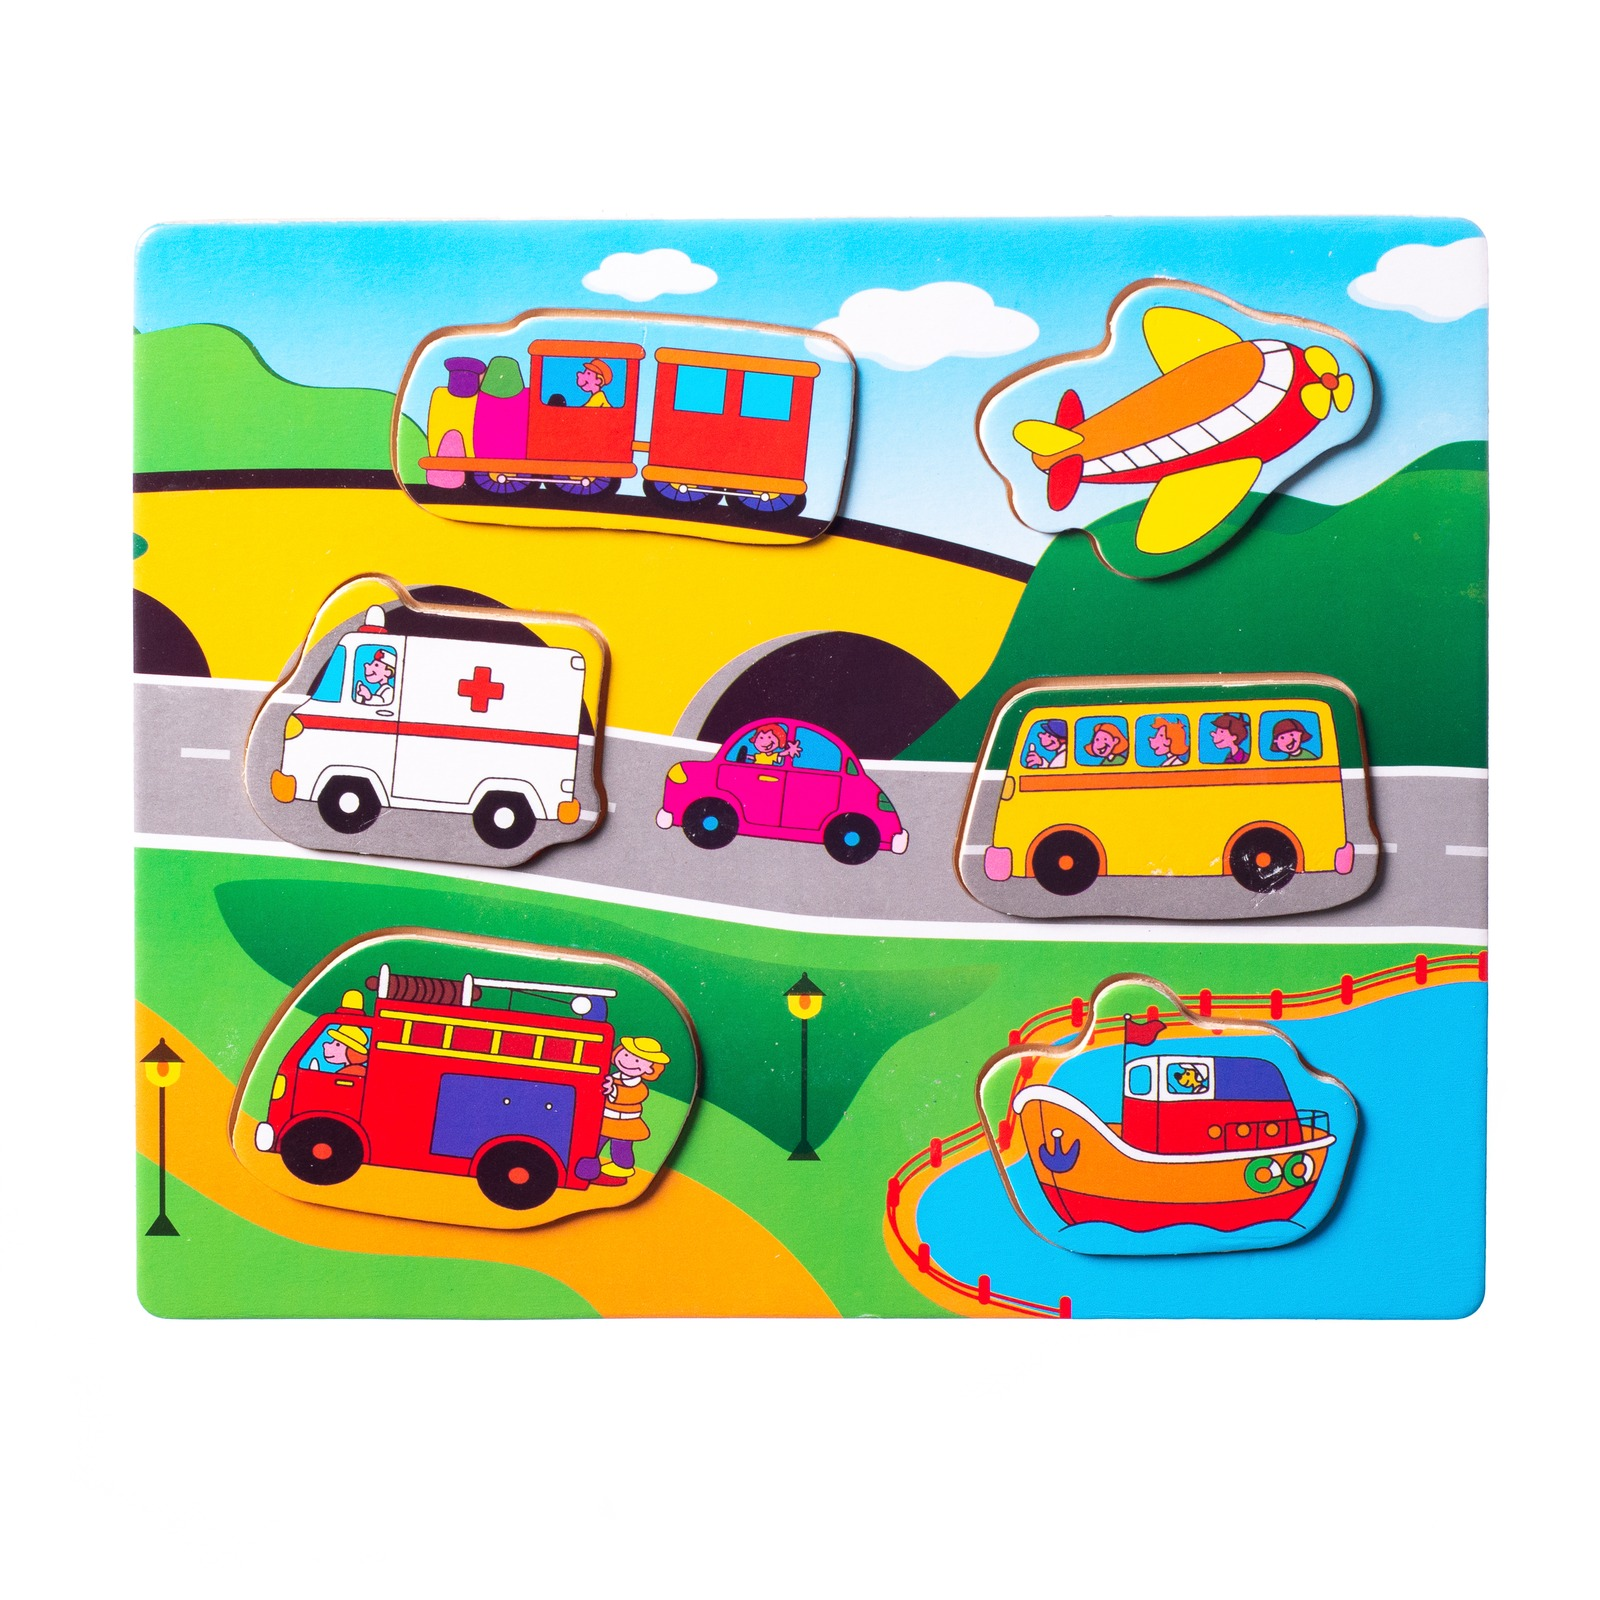 Eliiti Wooden Vehicles Puzzle for Boys Toddlers 2 to 4 Years